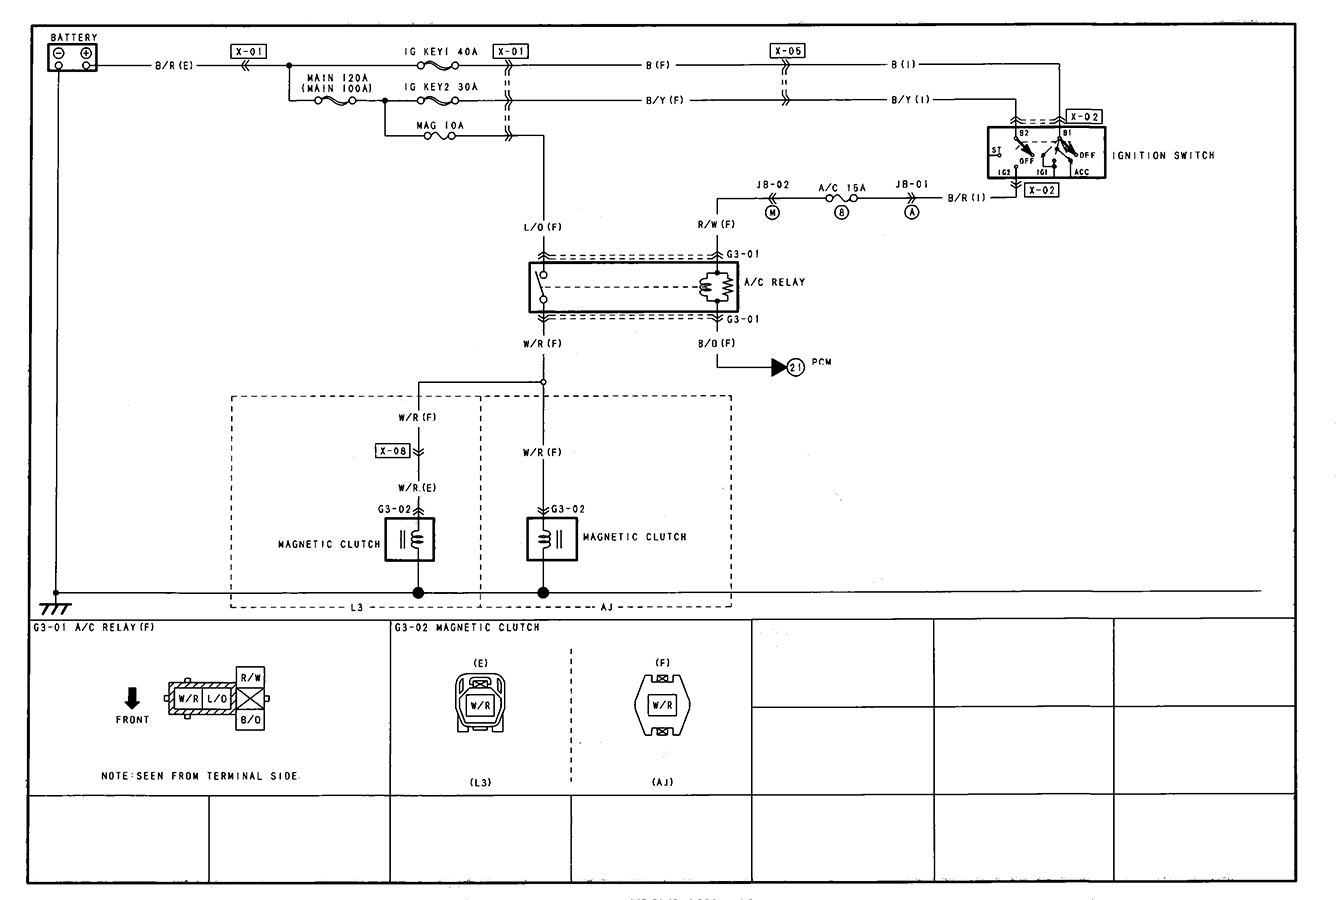 2012 08 25_194407_maz6 mazda 6 wiring diagram efcaviation com 2004 mazda 3 wiring diagram at webbmarketing.co